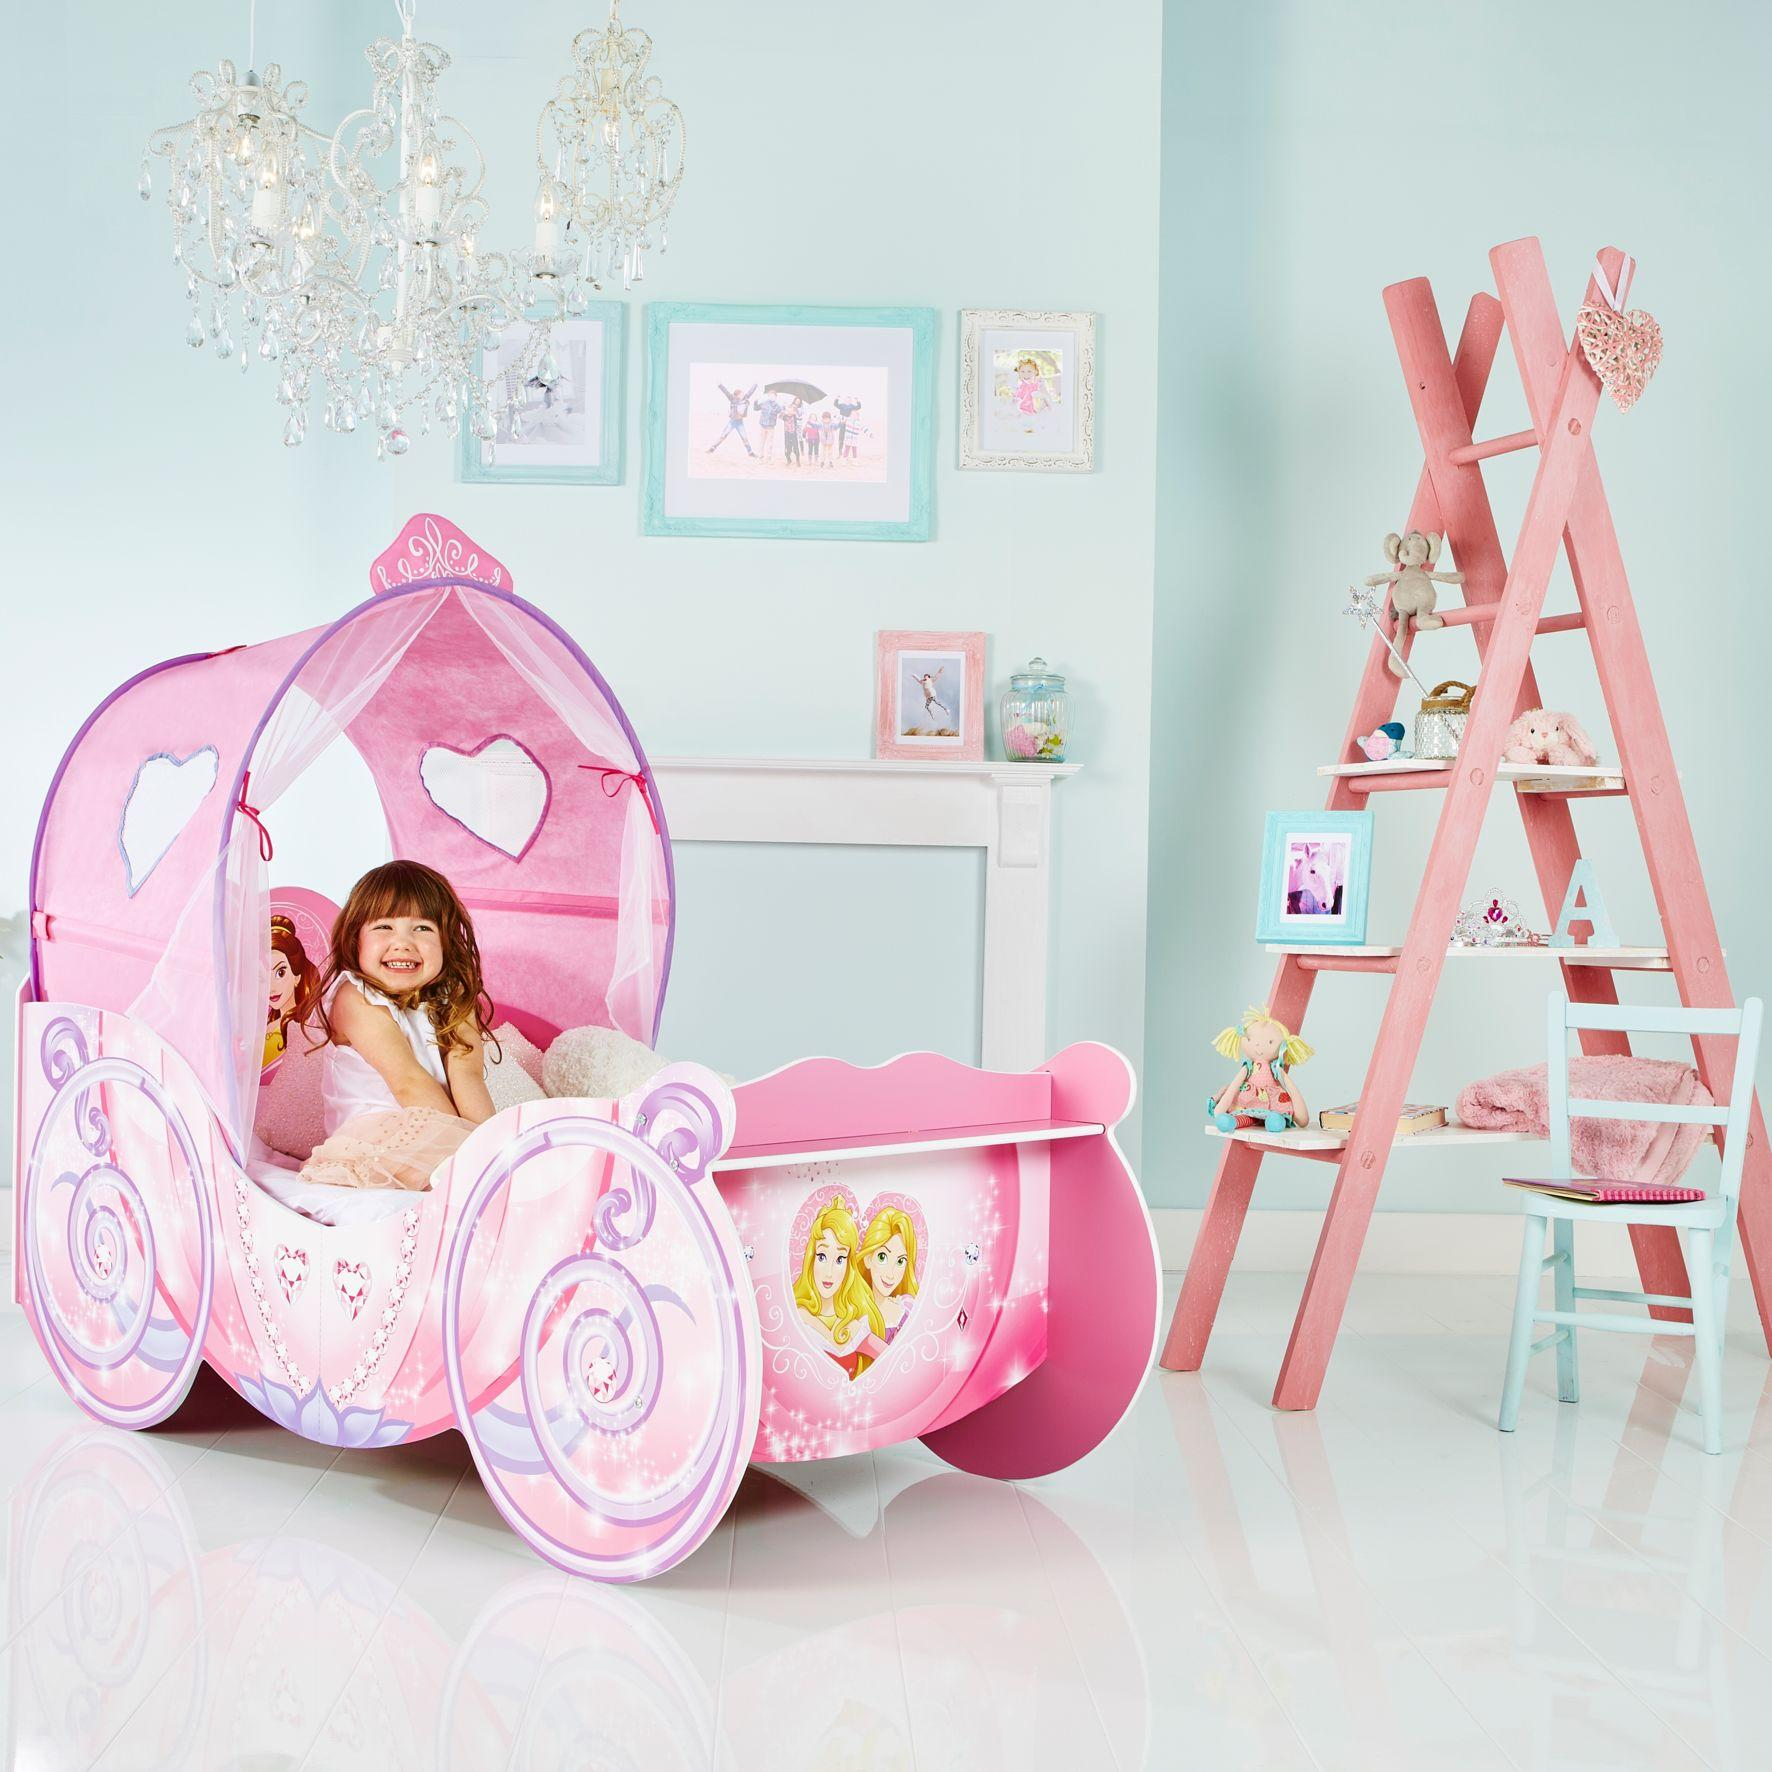 Disney Princess Carriage Kids Toddler Bed With LED Lights